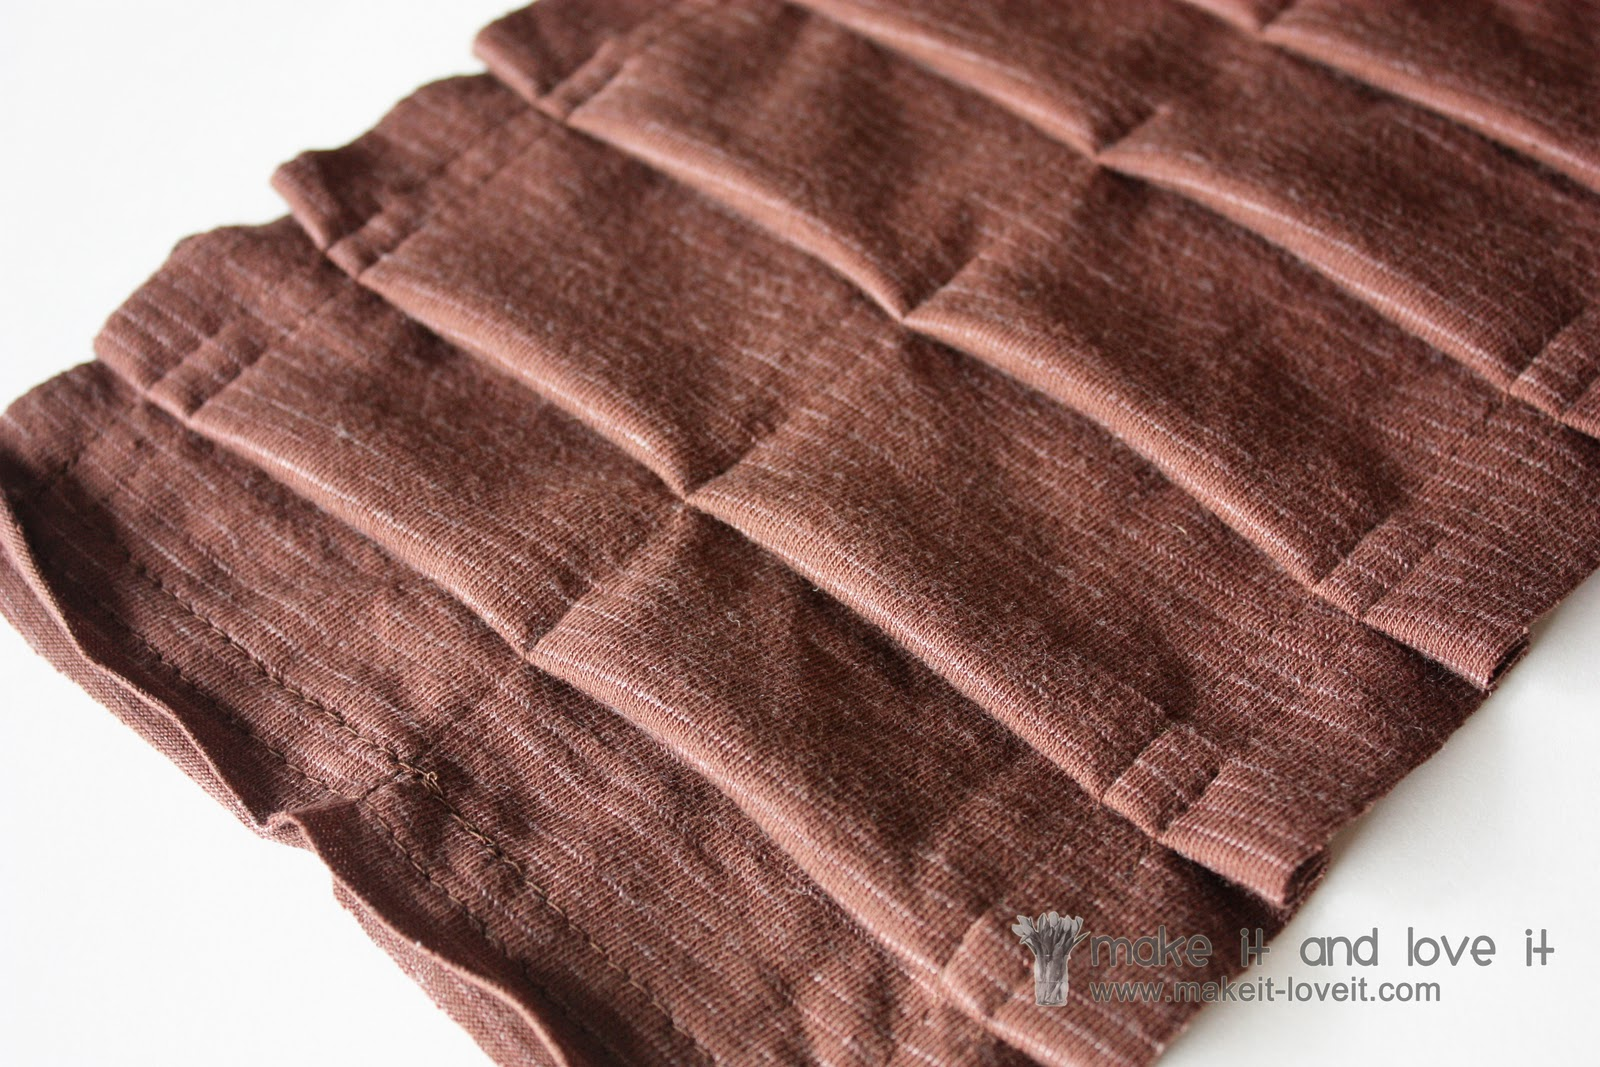 Knitting Edges Uneven : Pleated knit scarf make it and love